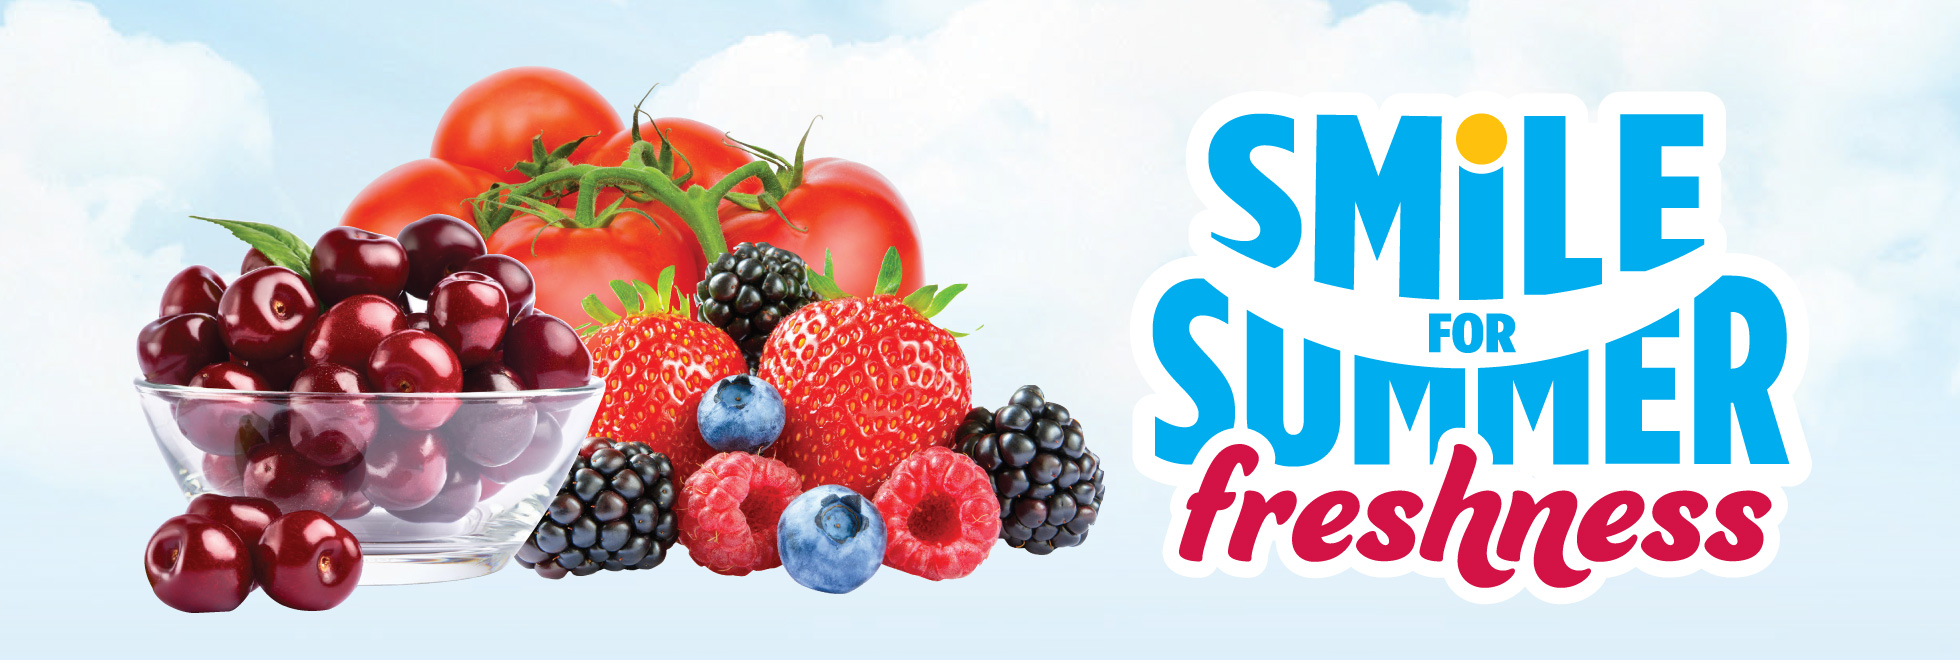 Smile for Summer with Fresh Produce Savings